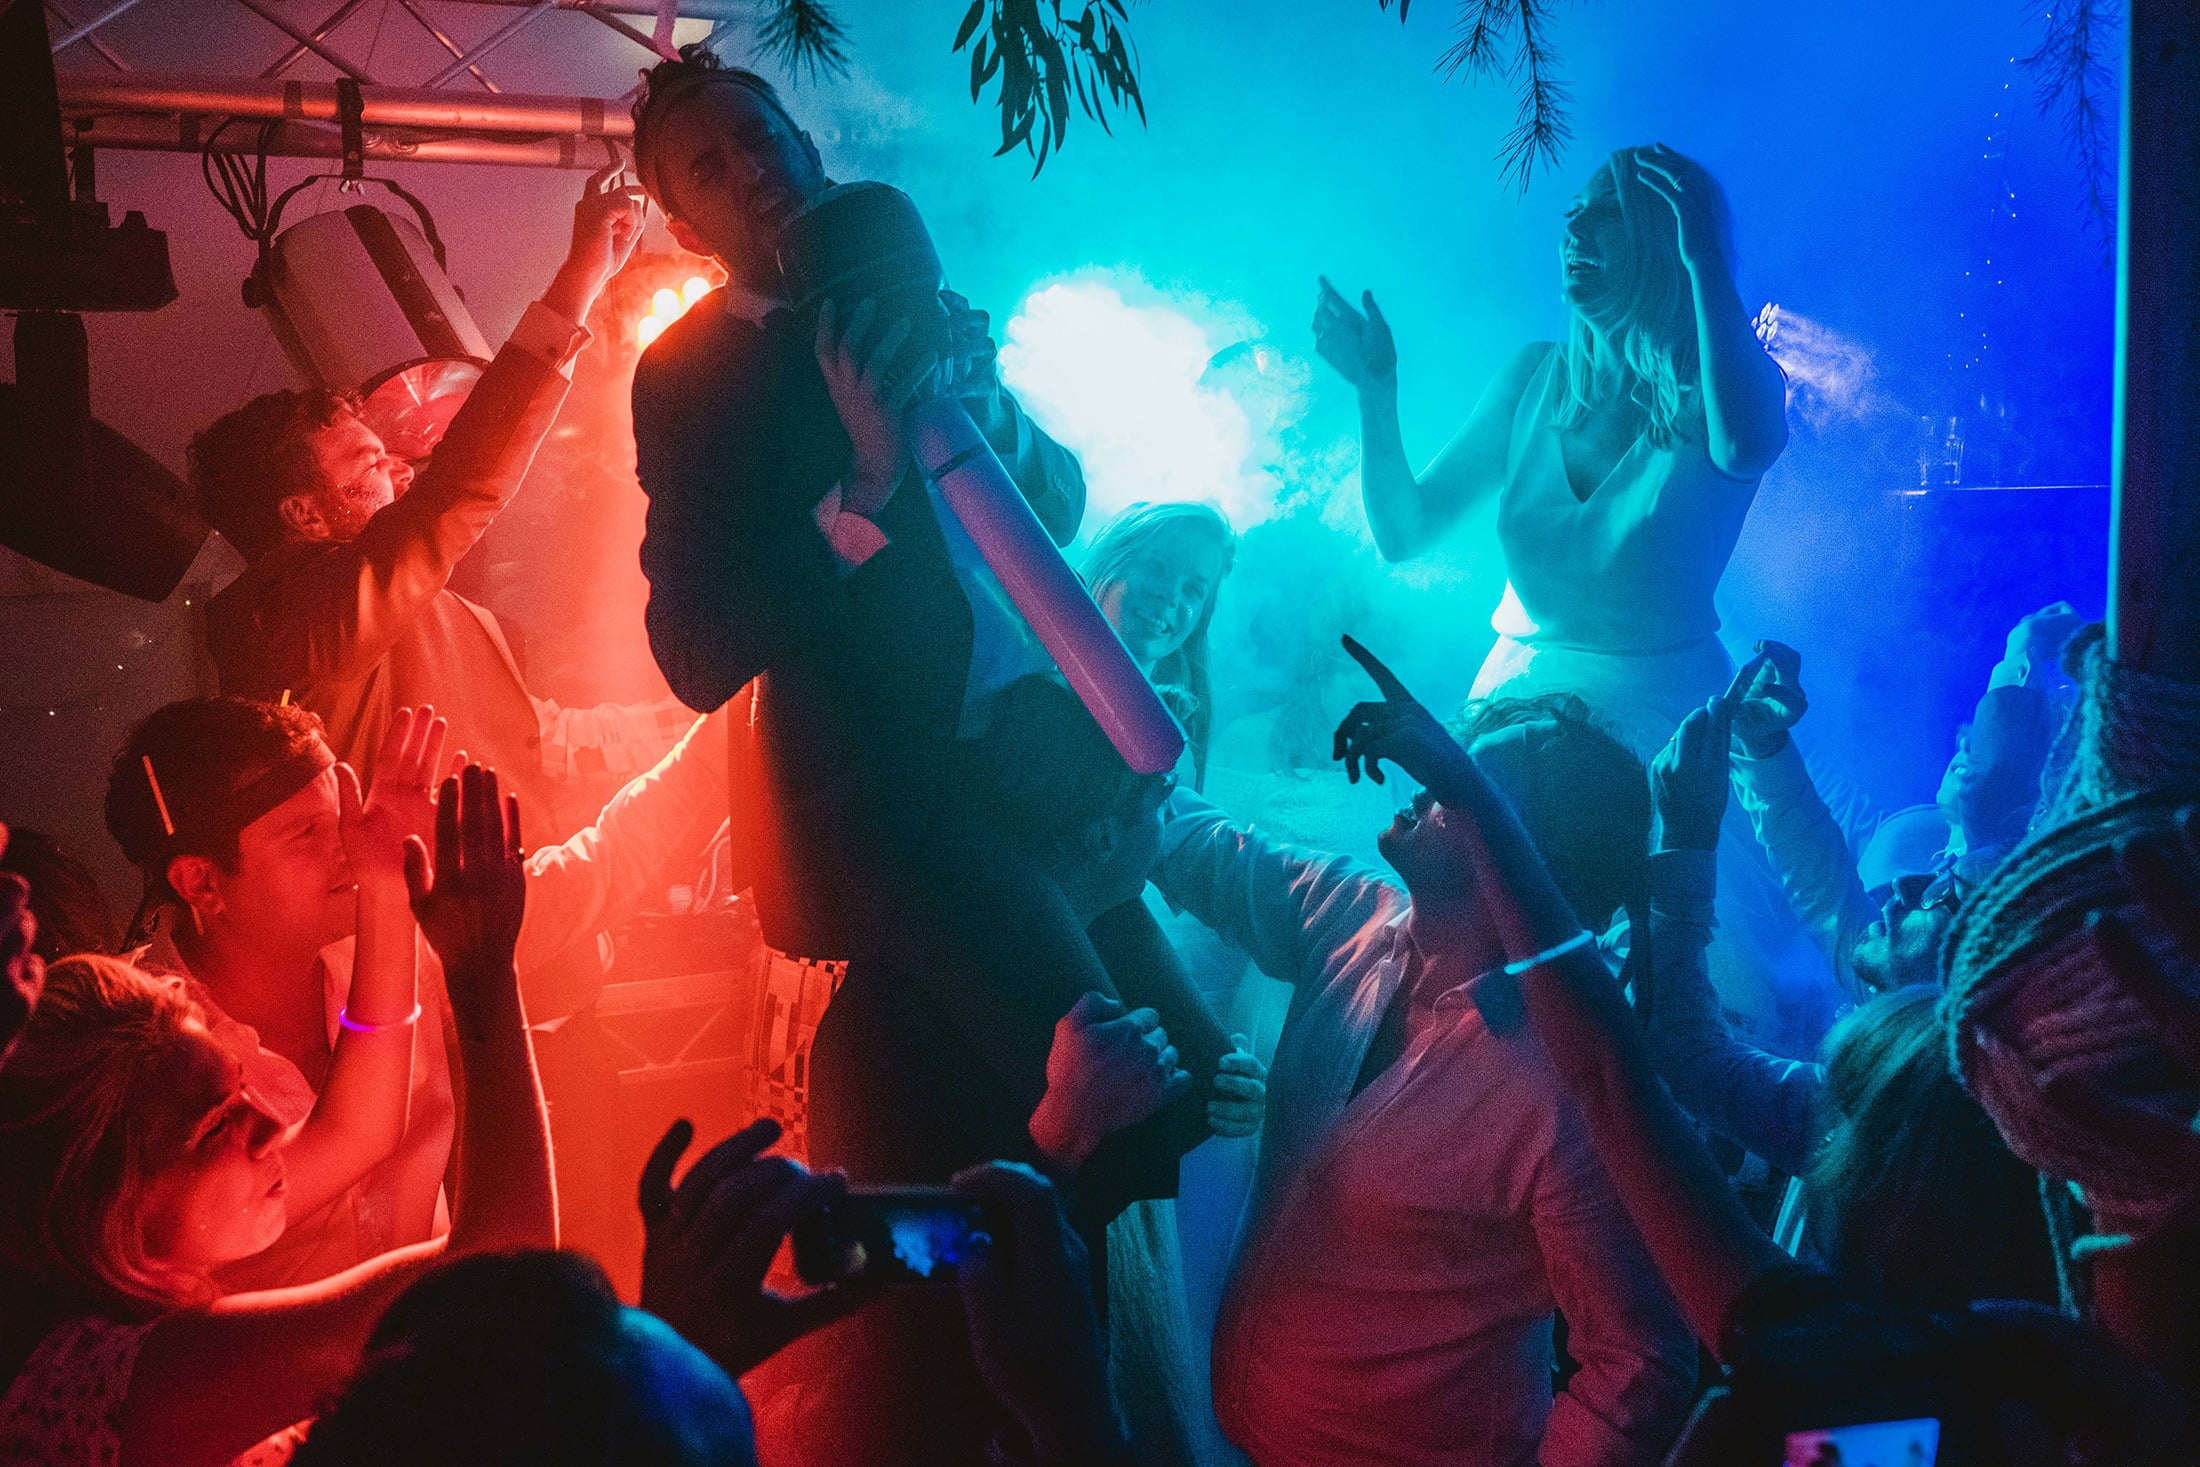 dance floor lit up with blue and red lights, bride and groom lifted into the air by friends